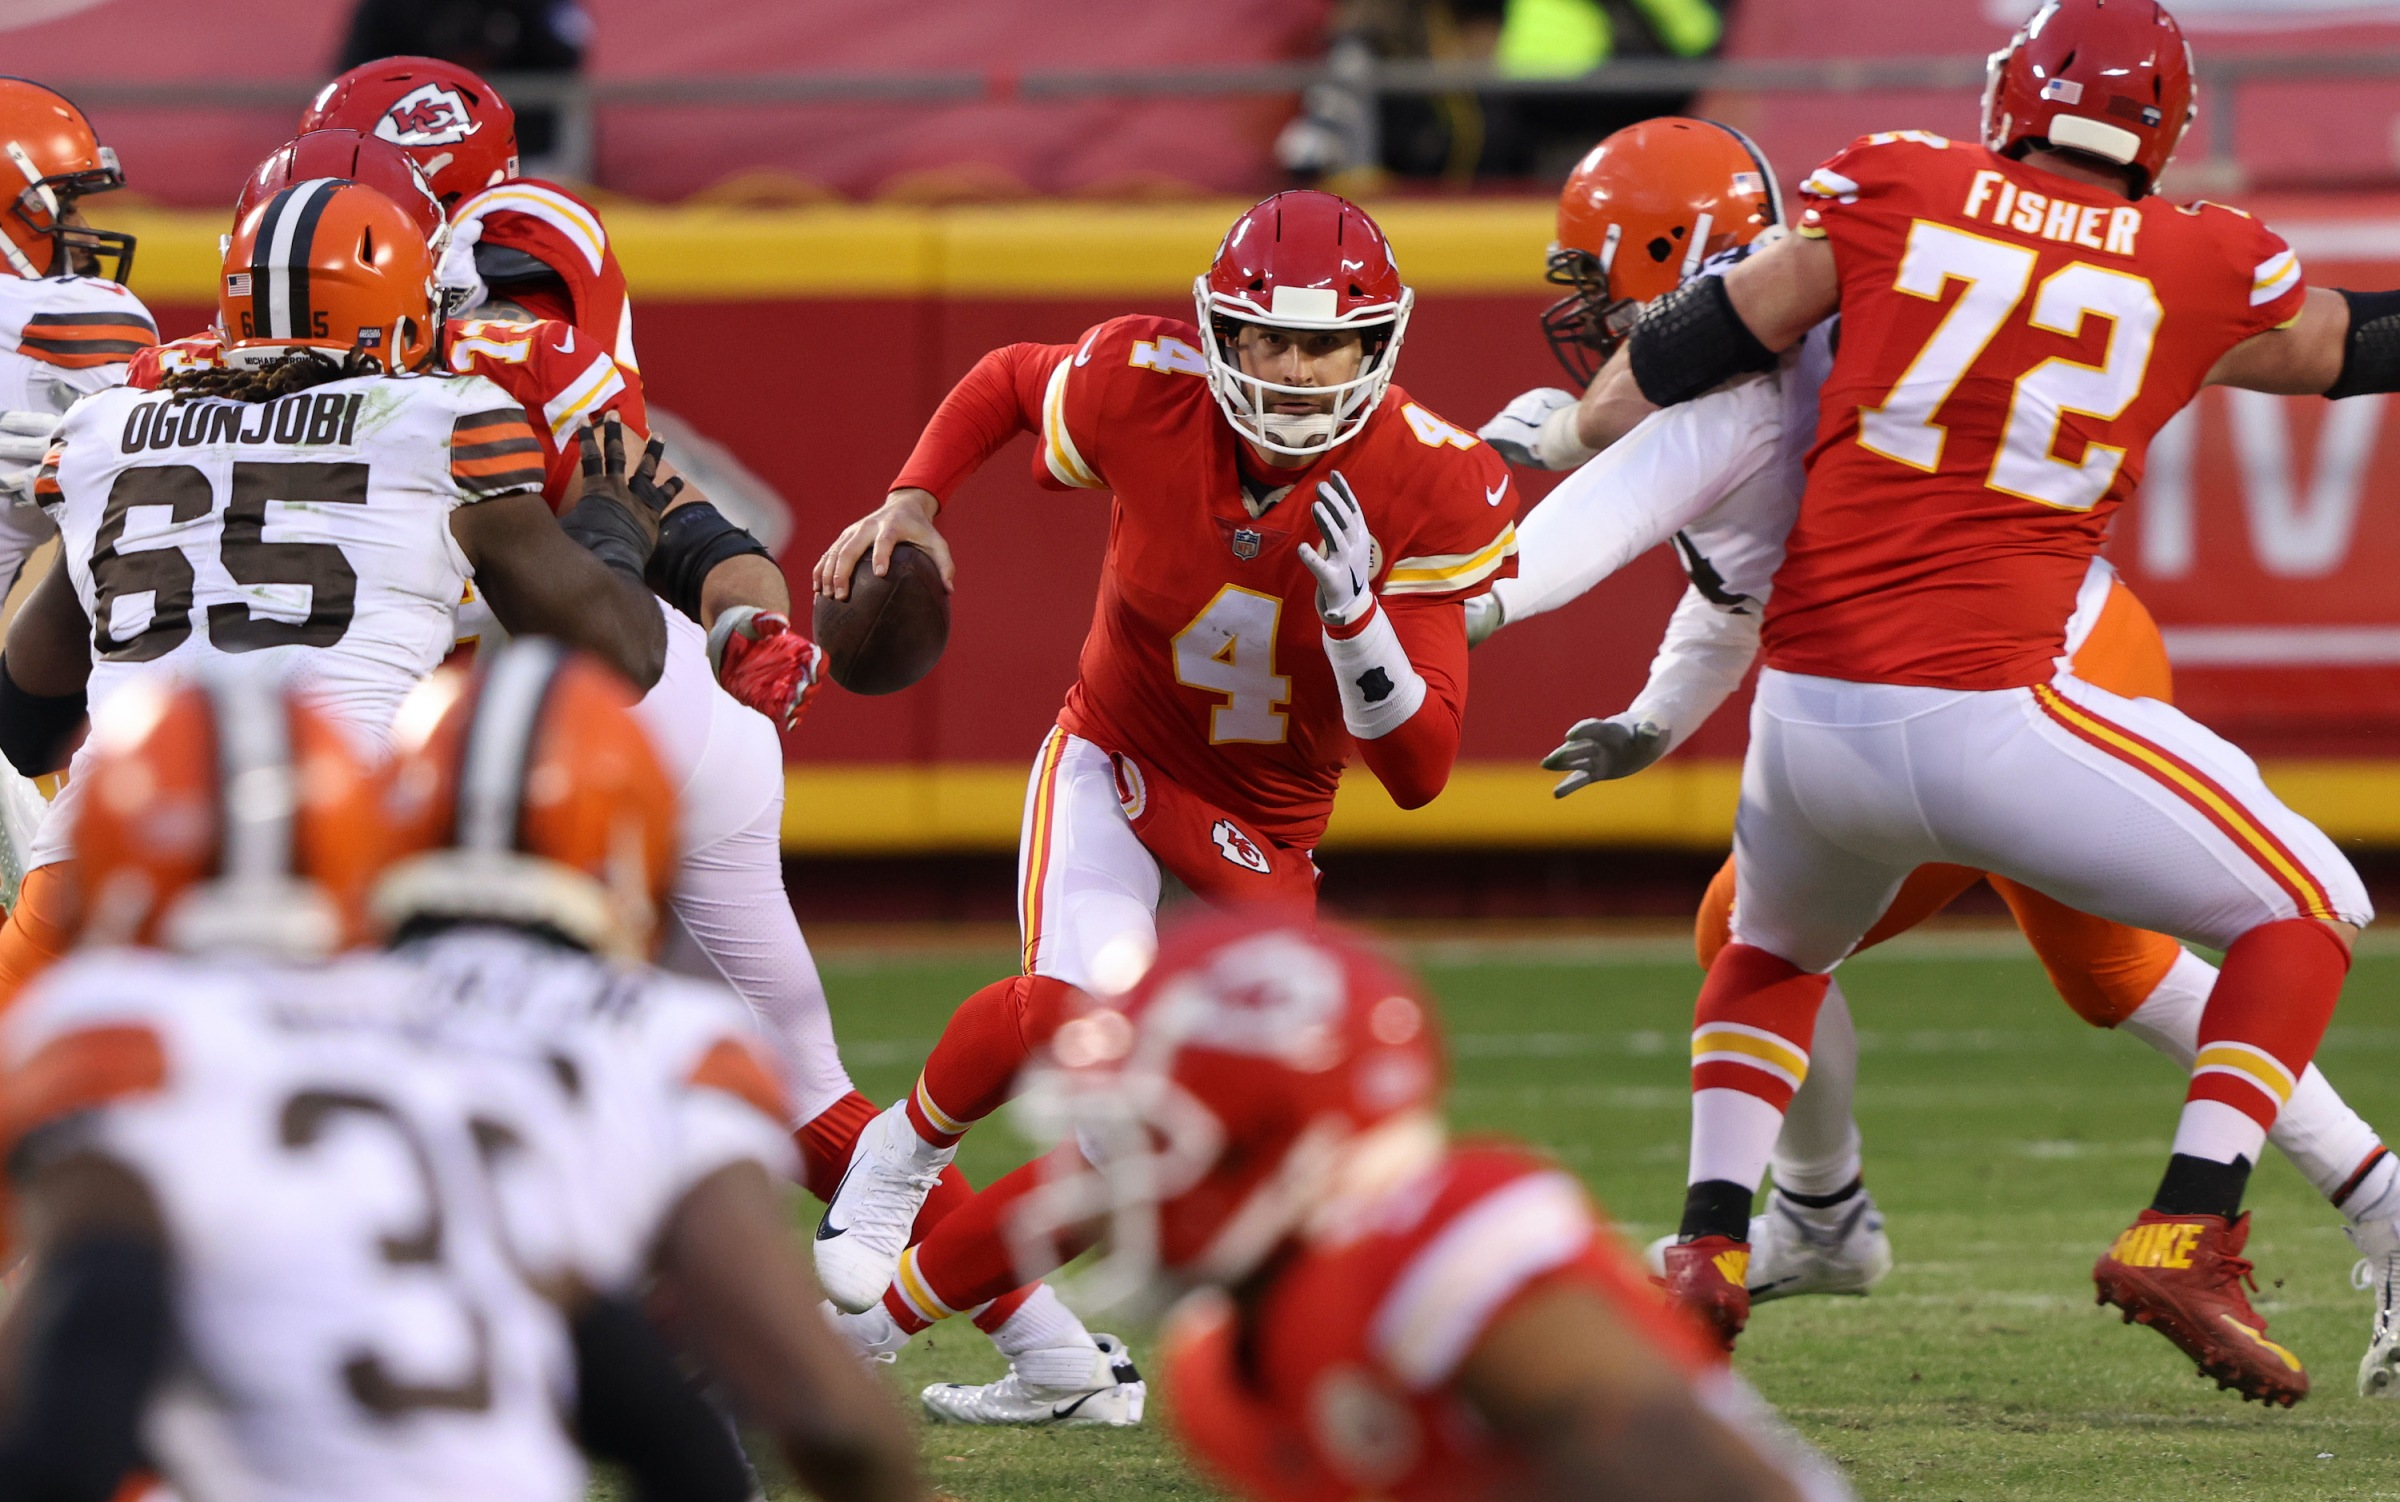 Quarterback Chad Henne #4 of the Kansas City Chiefs scrambles against the defense of the Cleveland Browns late in the fourth quarter of the AFC Divisional Playoff game at Arrowhead Stadium on January 17, 2021 in Kansas City, Missouri.